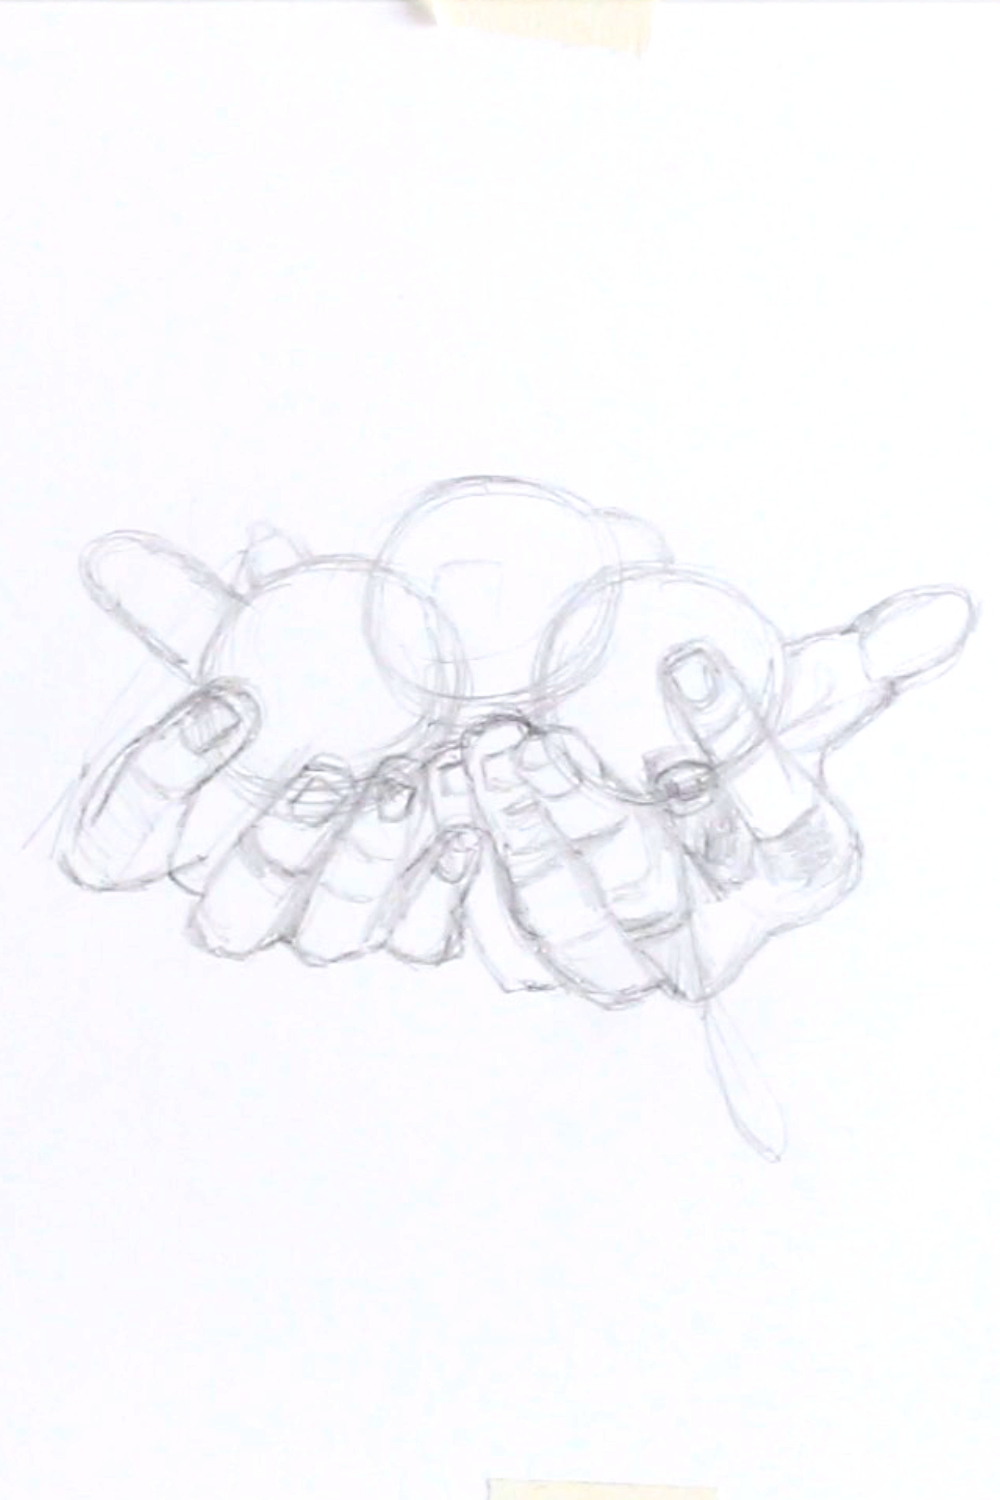 Sketching the hands after my reference picture |  Drawing Hands for my New Year Card , by The Daily Atelier